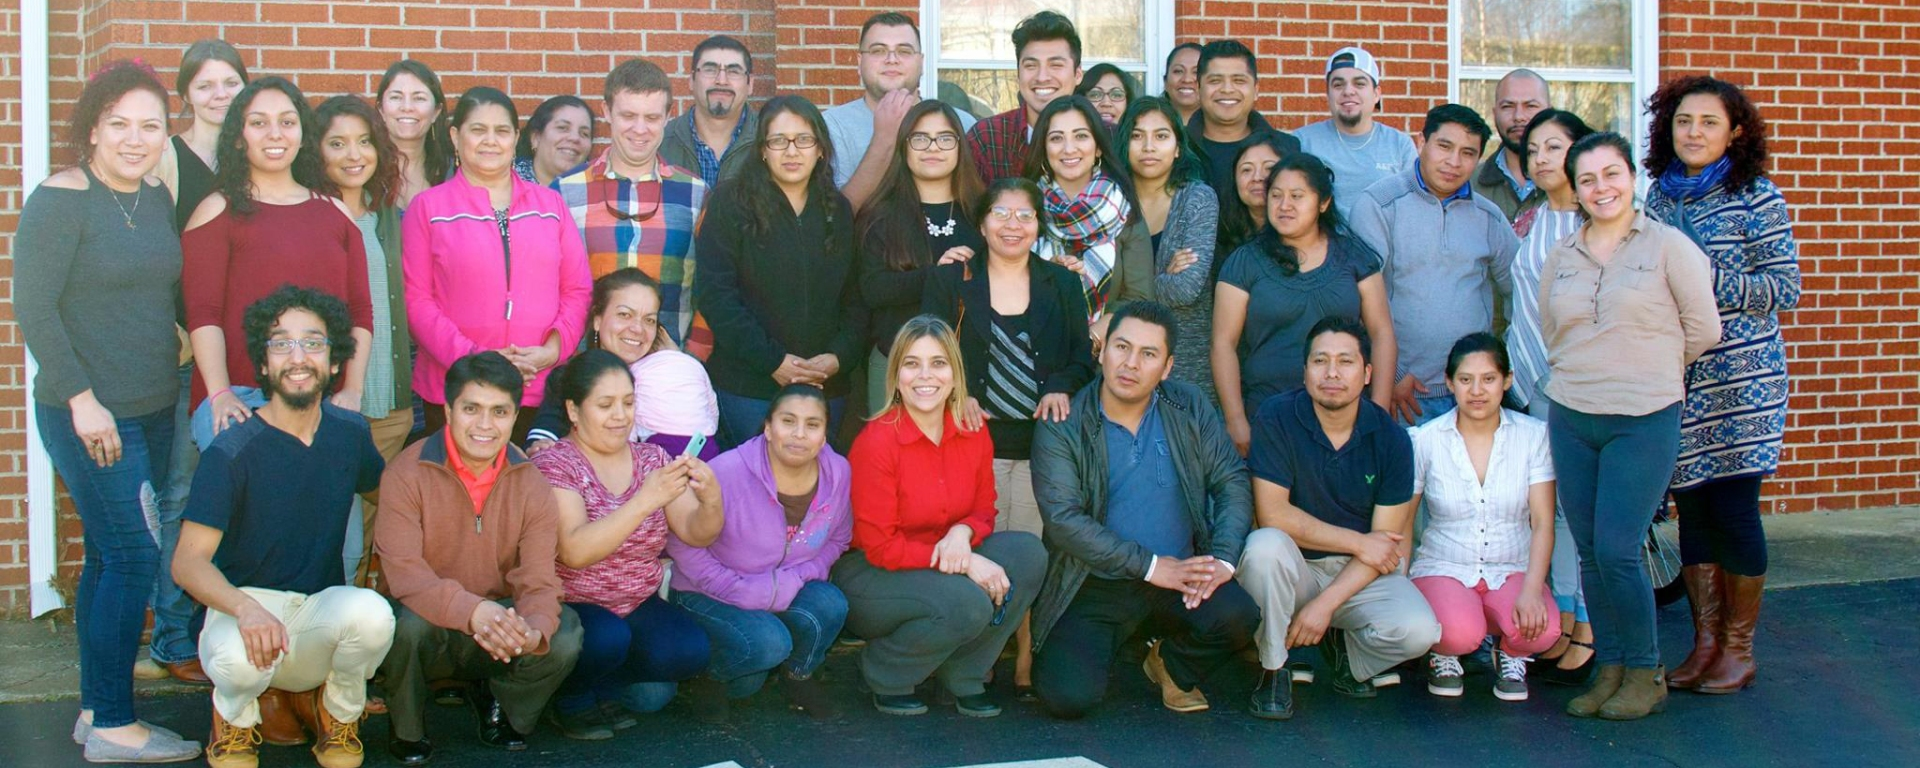 Nuestro Centro Group, community action for Asheville's Latino community